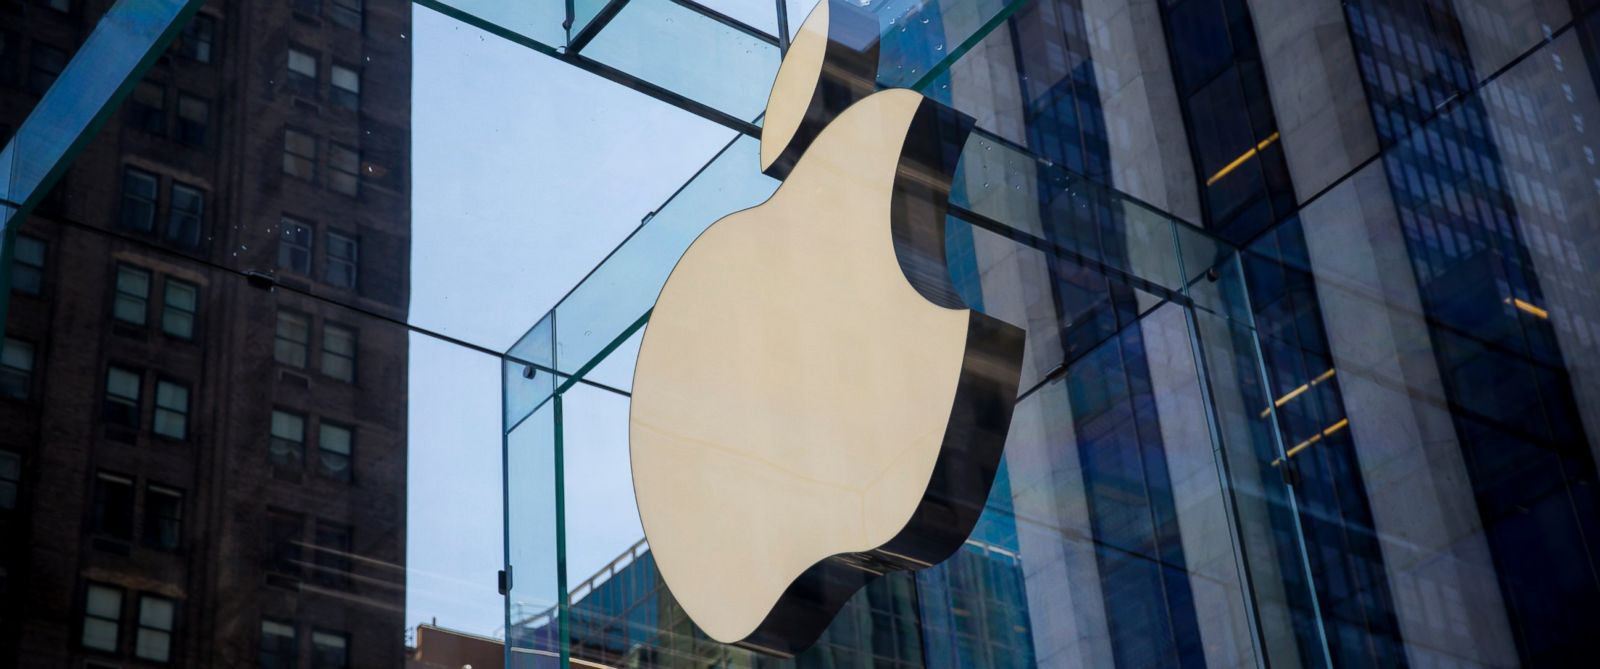 PHOTO: The Apple logo is displayed at the Apple Store, June 17, 2015, on Fifth Avenue in New York City.